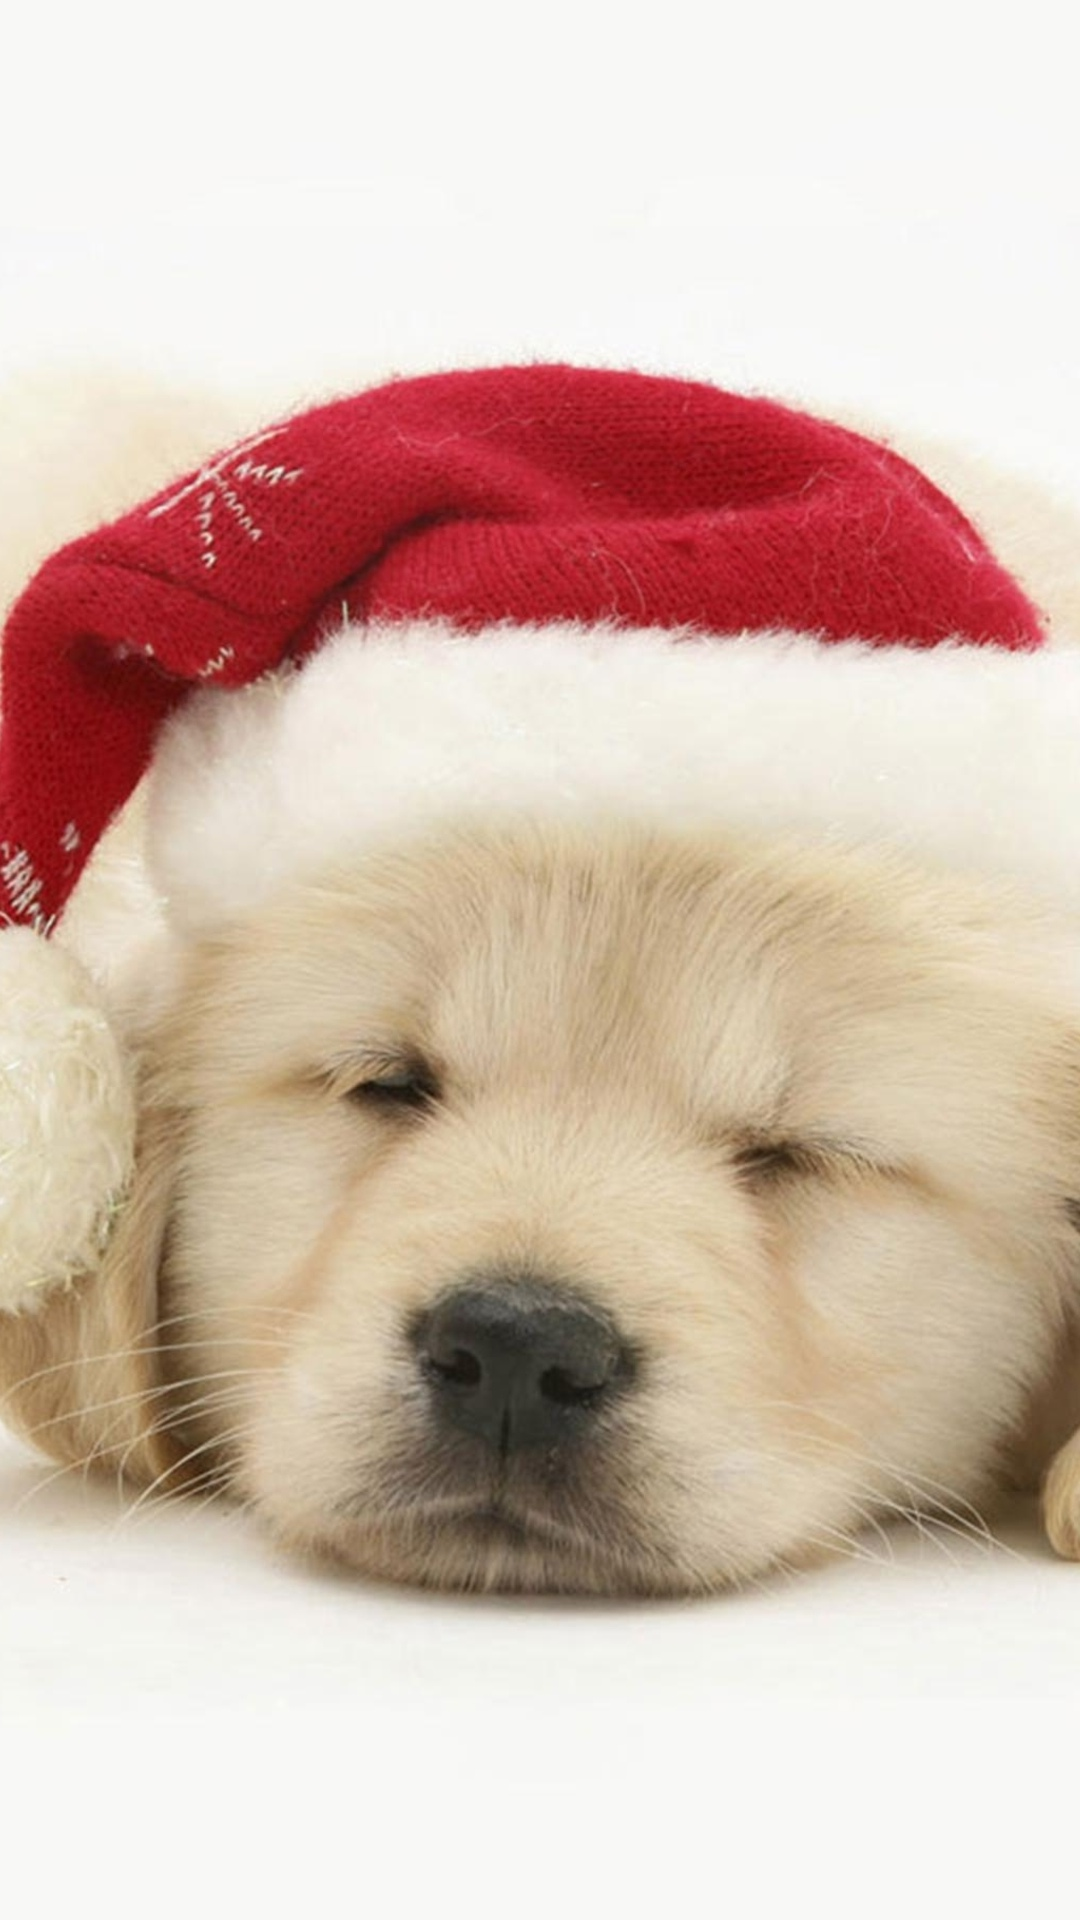 Wallpapers for galaxy puppy santa claus wallpaper - Galaxy christmas wallpaper ...